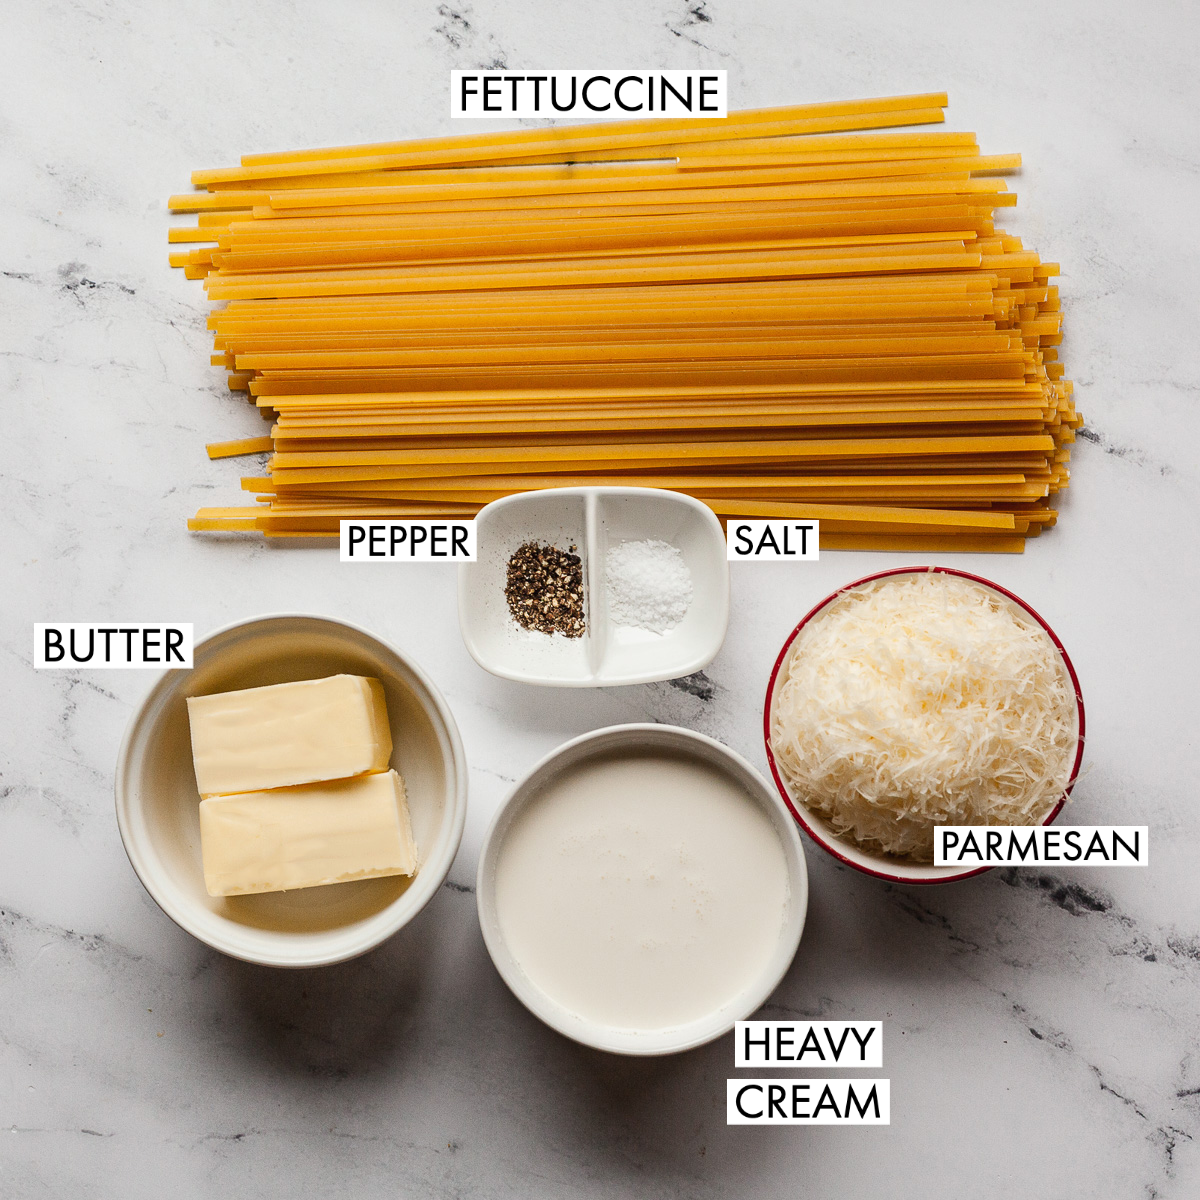 ingredients of fettuccine alfredo